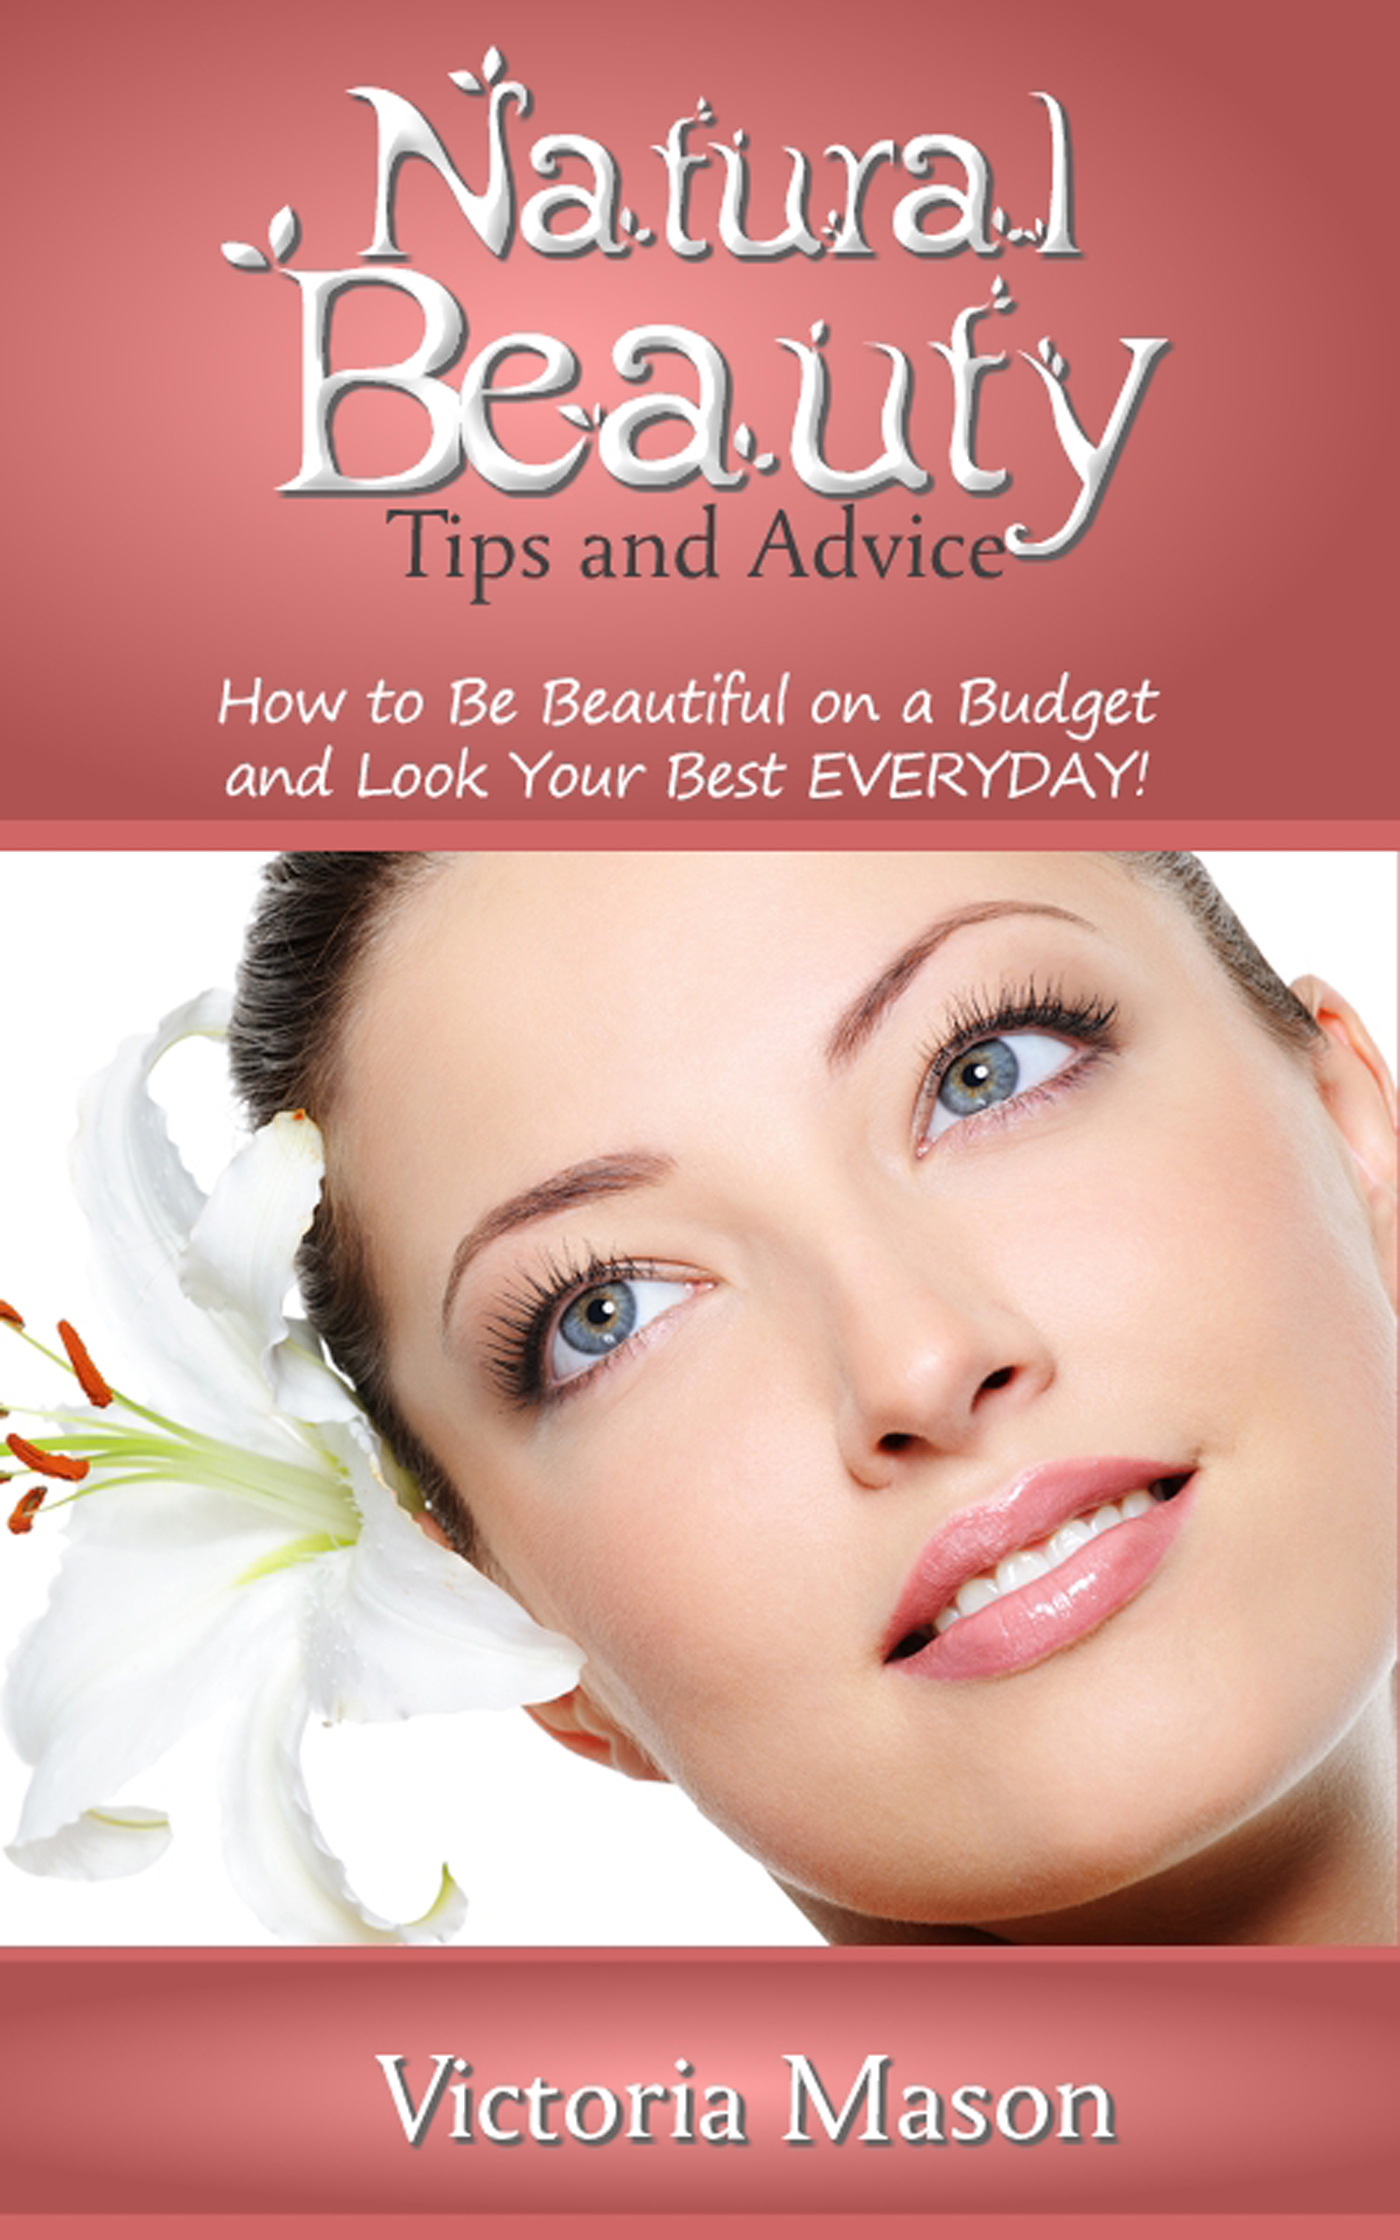 Natural Beauty Tips and Advice: How to Be Beautiful on a Budget and Look Your Best EVERYDAY! By: Victoria Mason